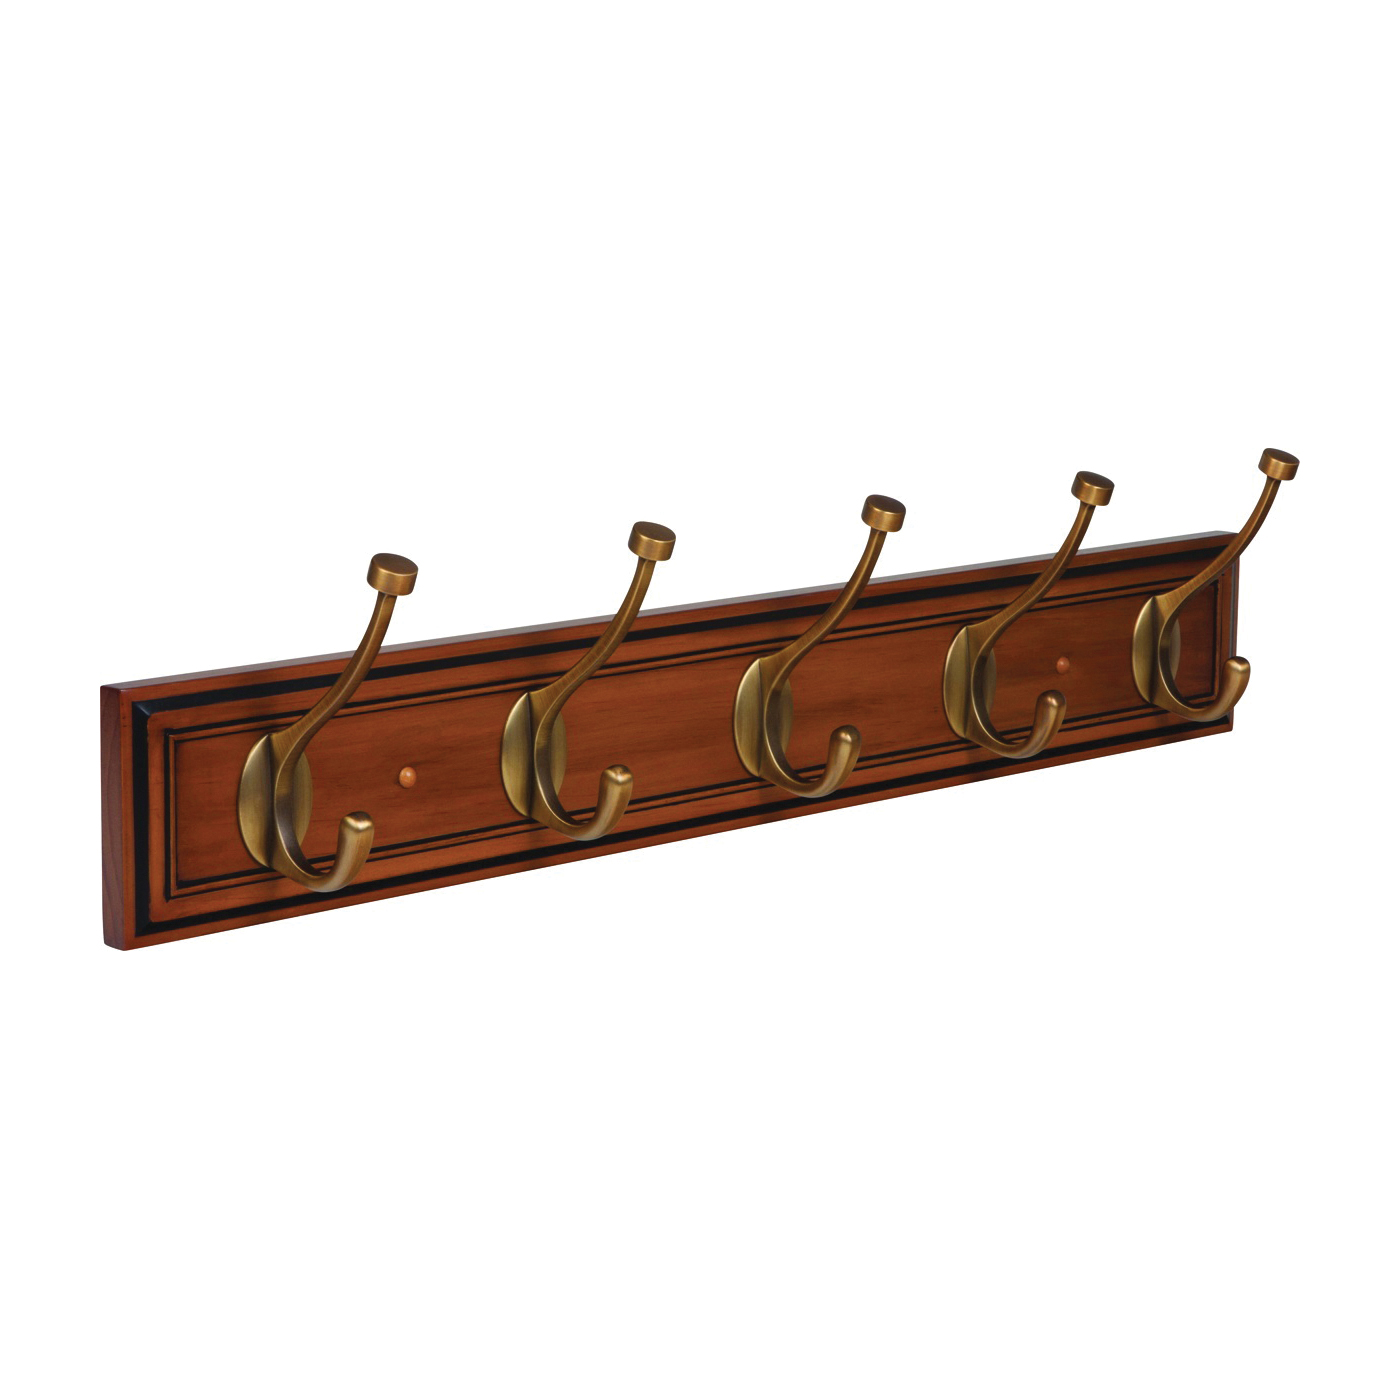 Picture of Amerock 2000335 Hook Rack, 5-Hook, Pine/Zinc, Gilded Bronze/Honey Pine